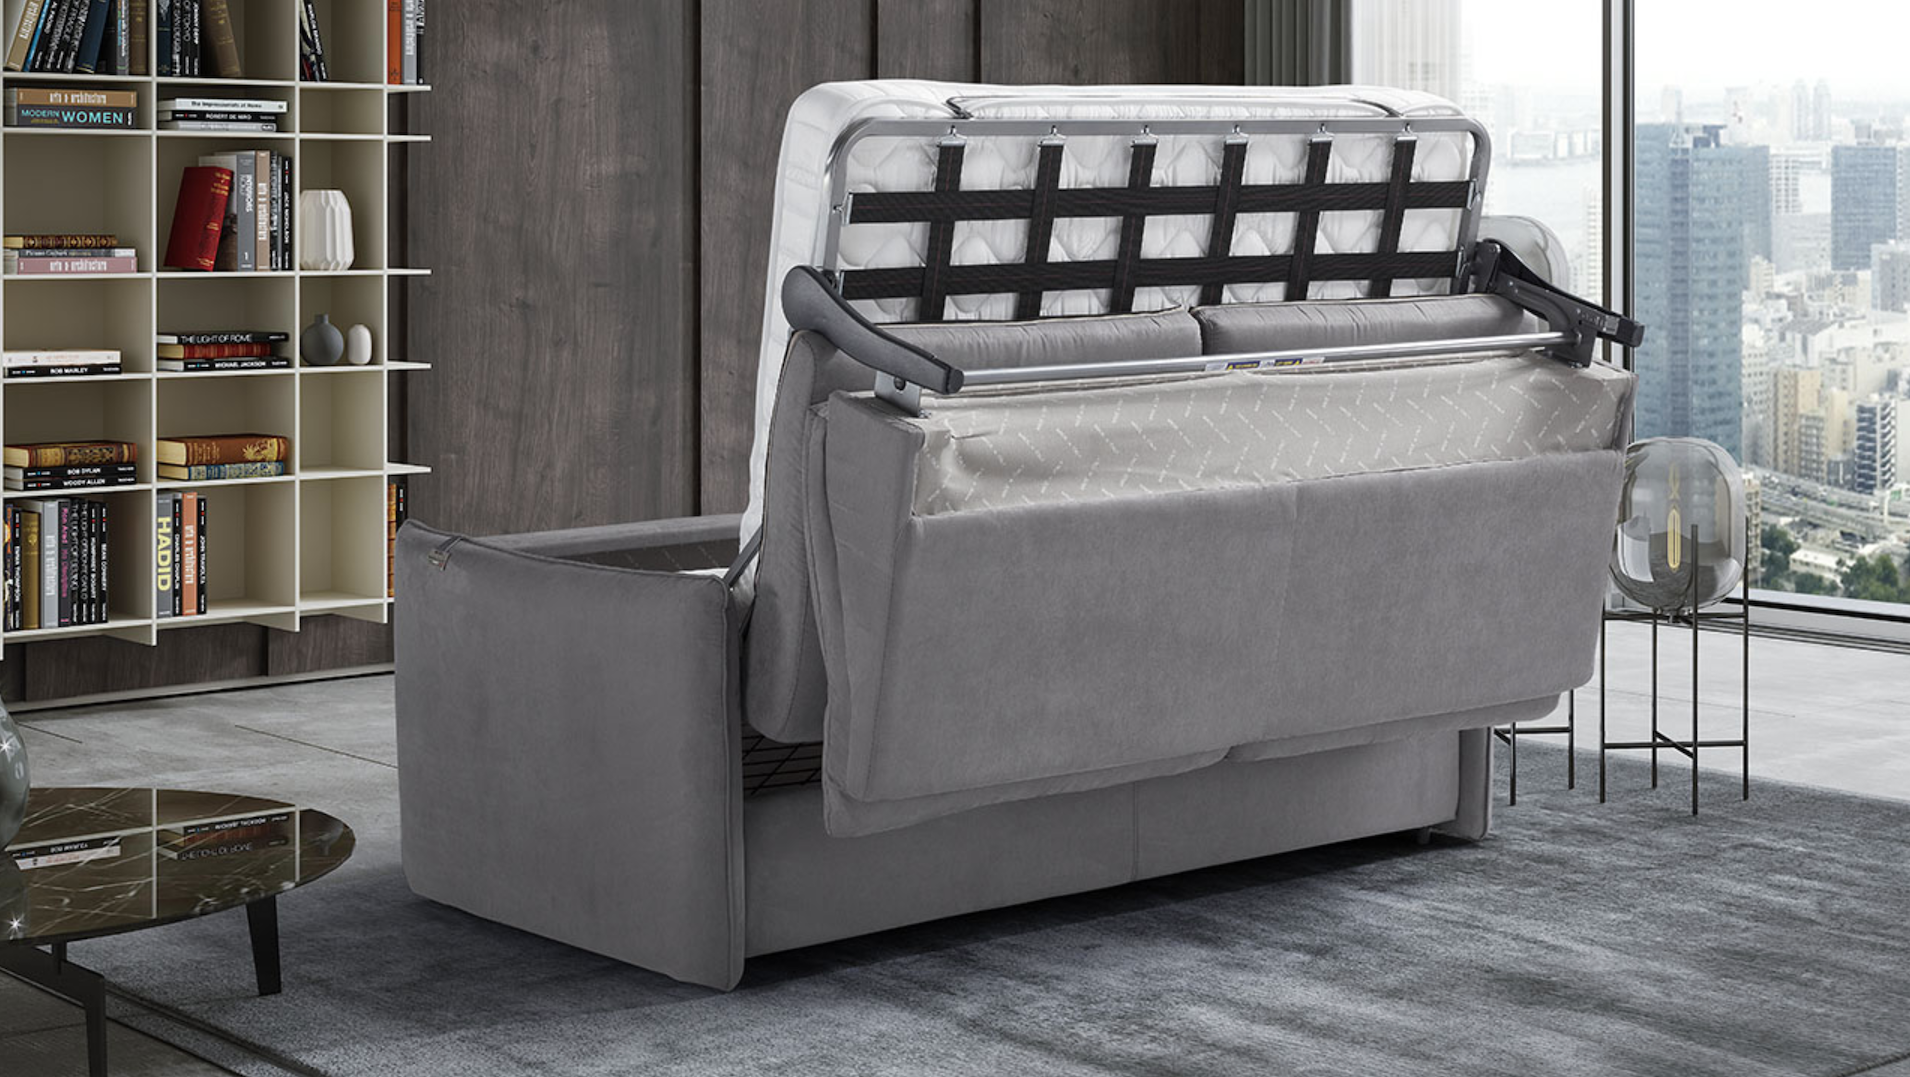 AIMEE Italian Crafted 3 Seat Sofa Bed in PLAZA SILVER RRP £1979 - Image 7 of 9